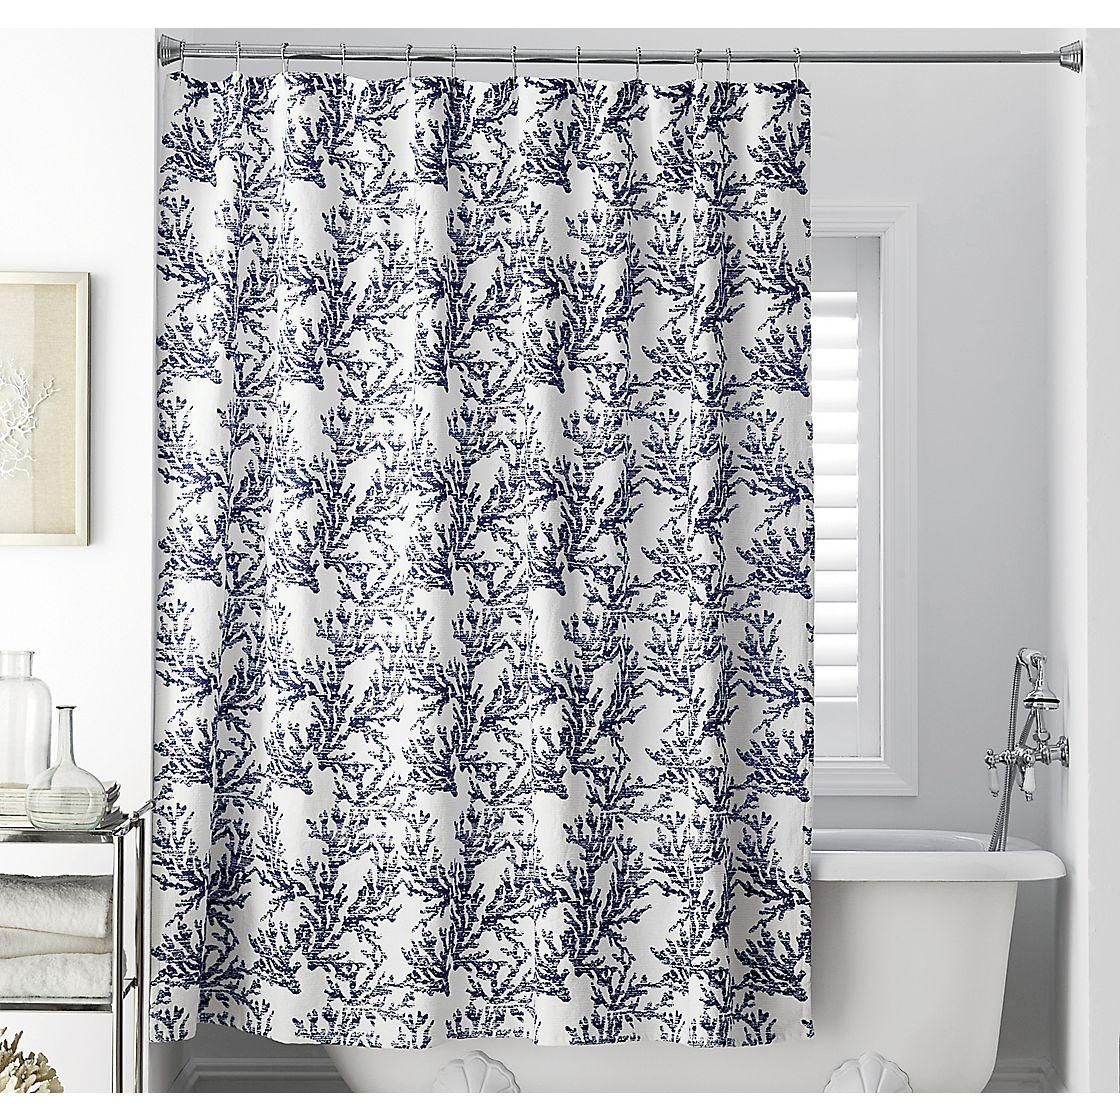 Oceanfront Shower Curtain At The Company Store Bath Shower